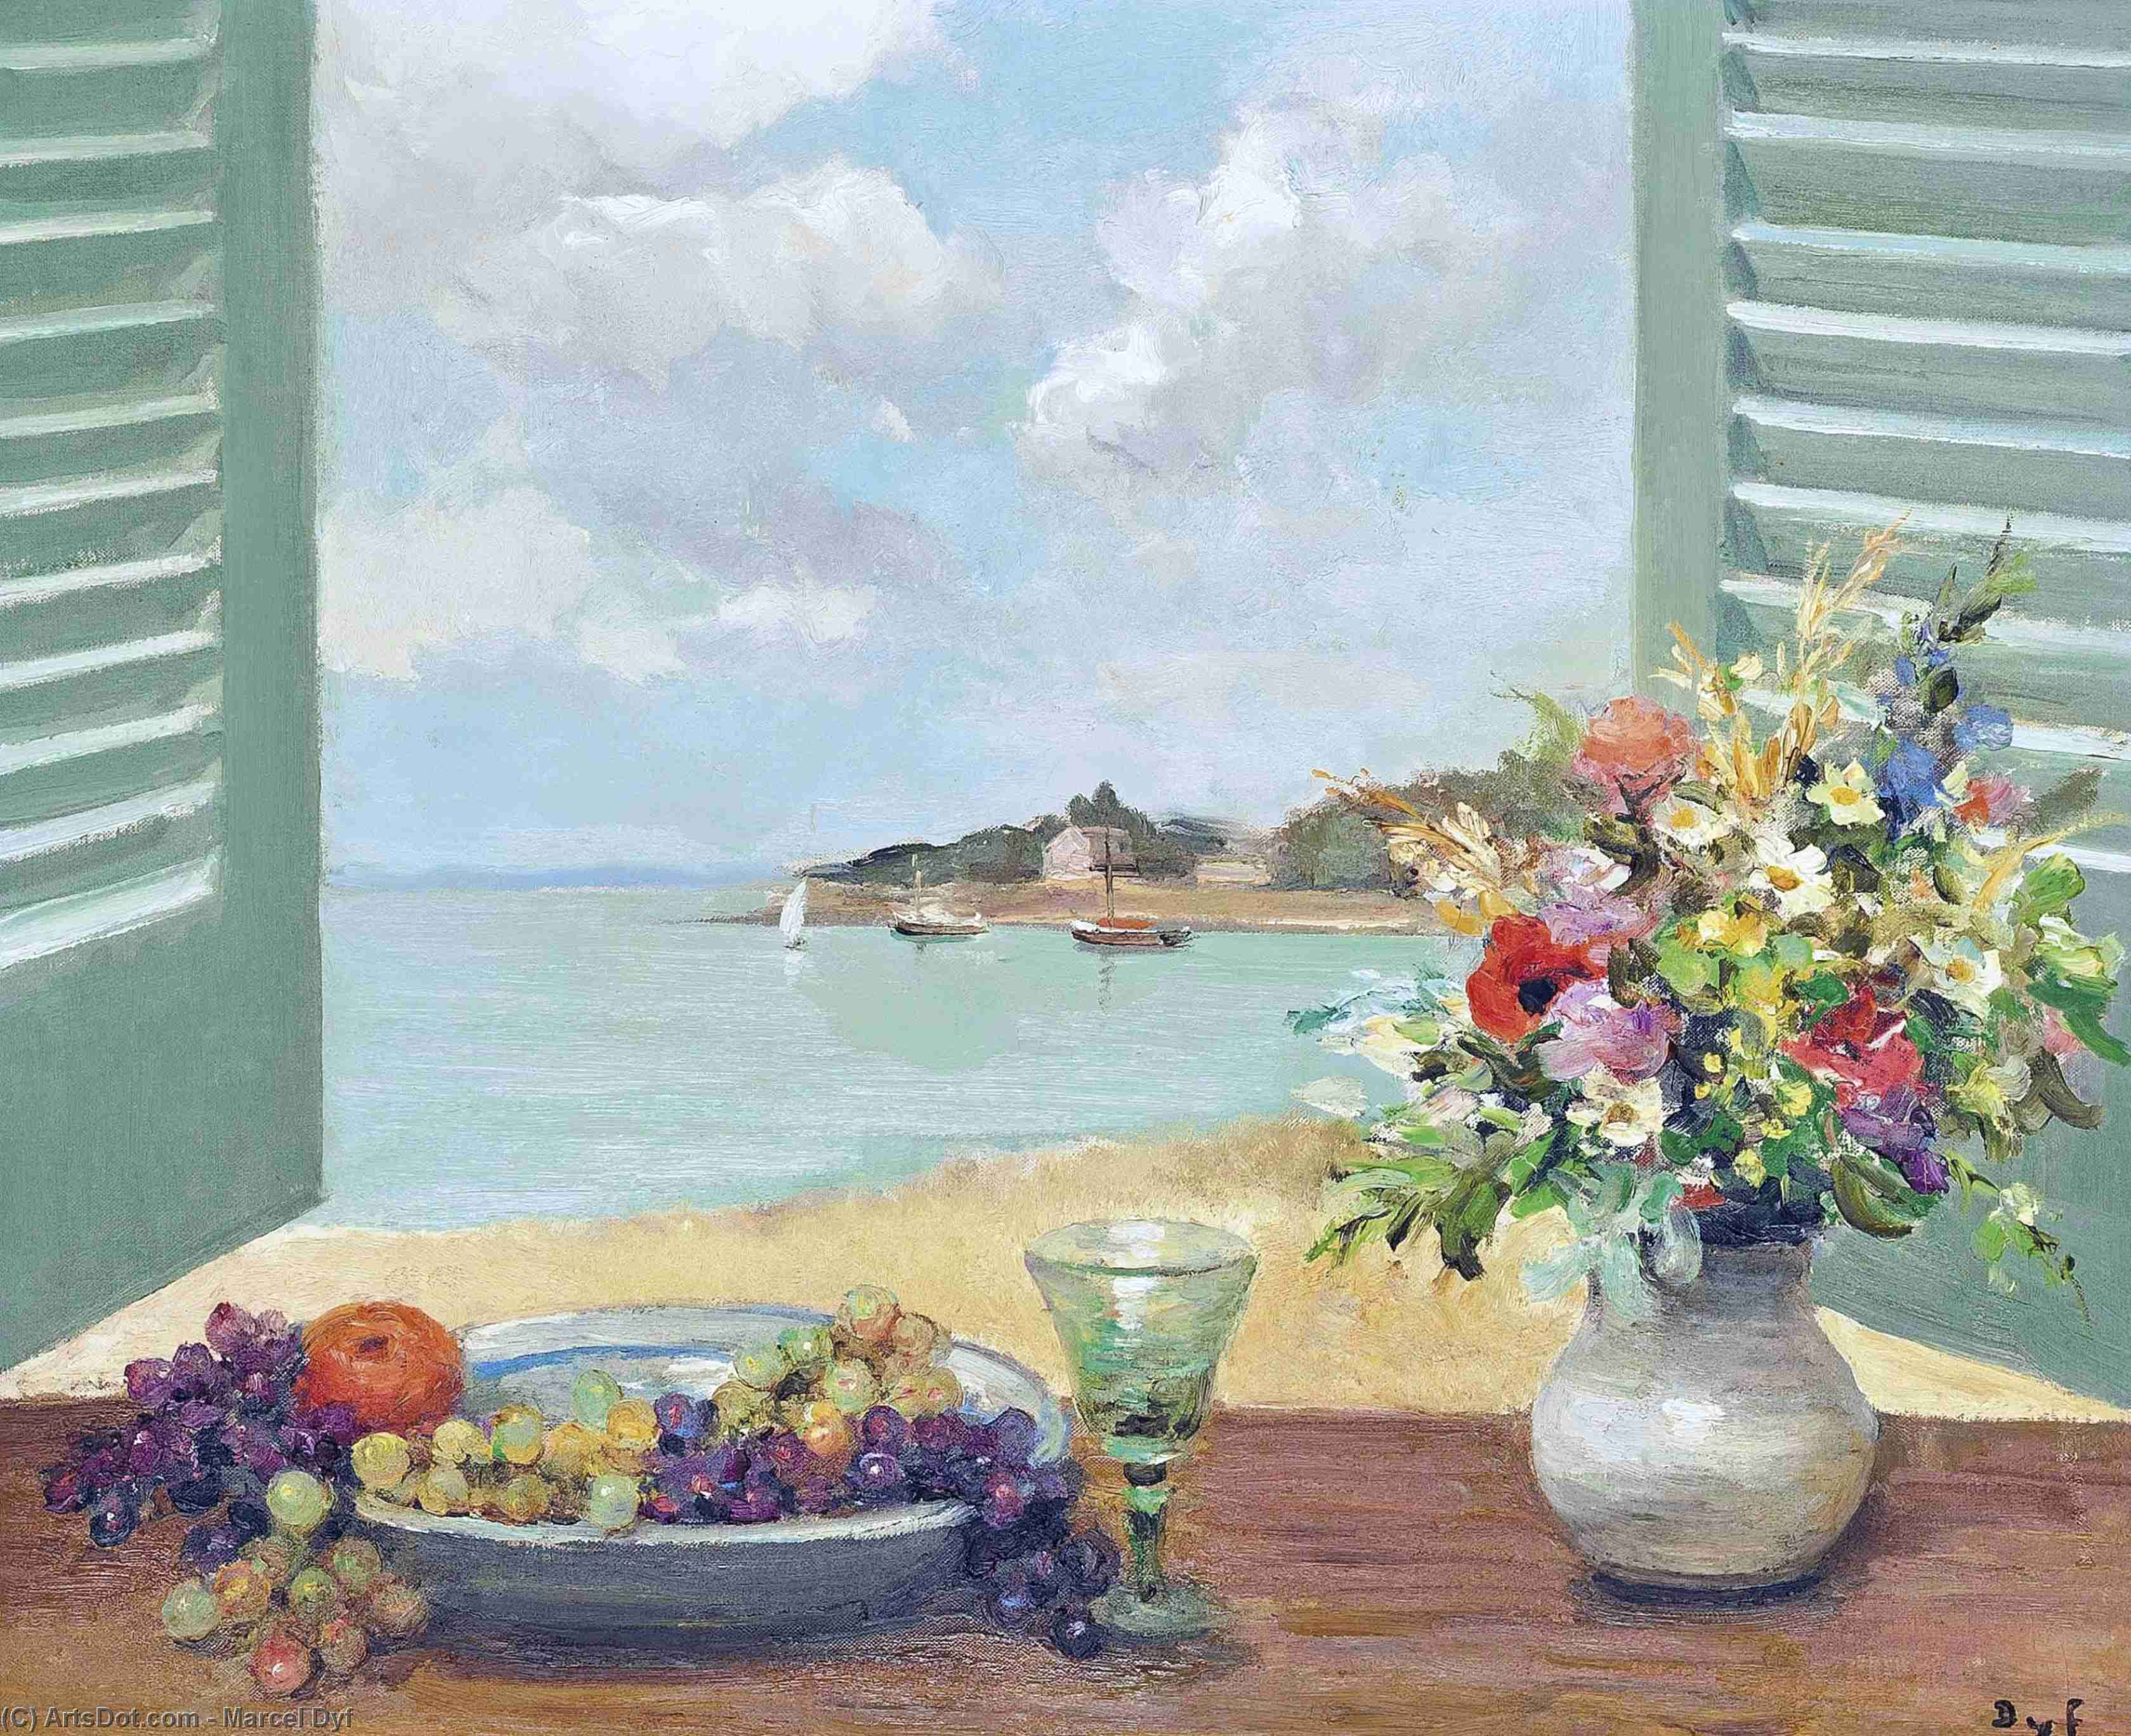 Window over the Sea, (1980) by Marcel Dyf (1899-1985, France)